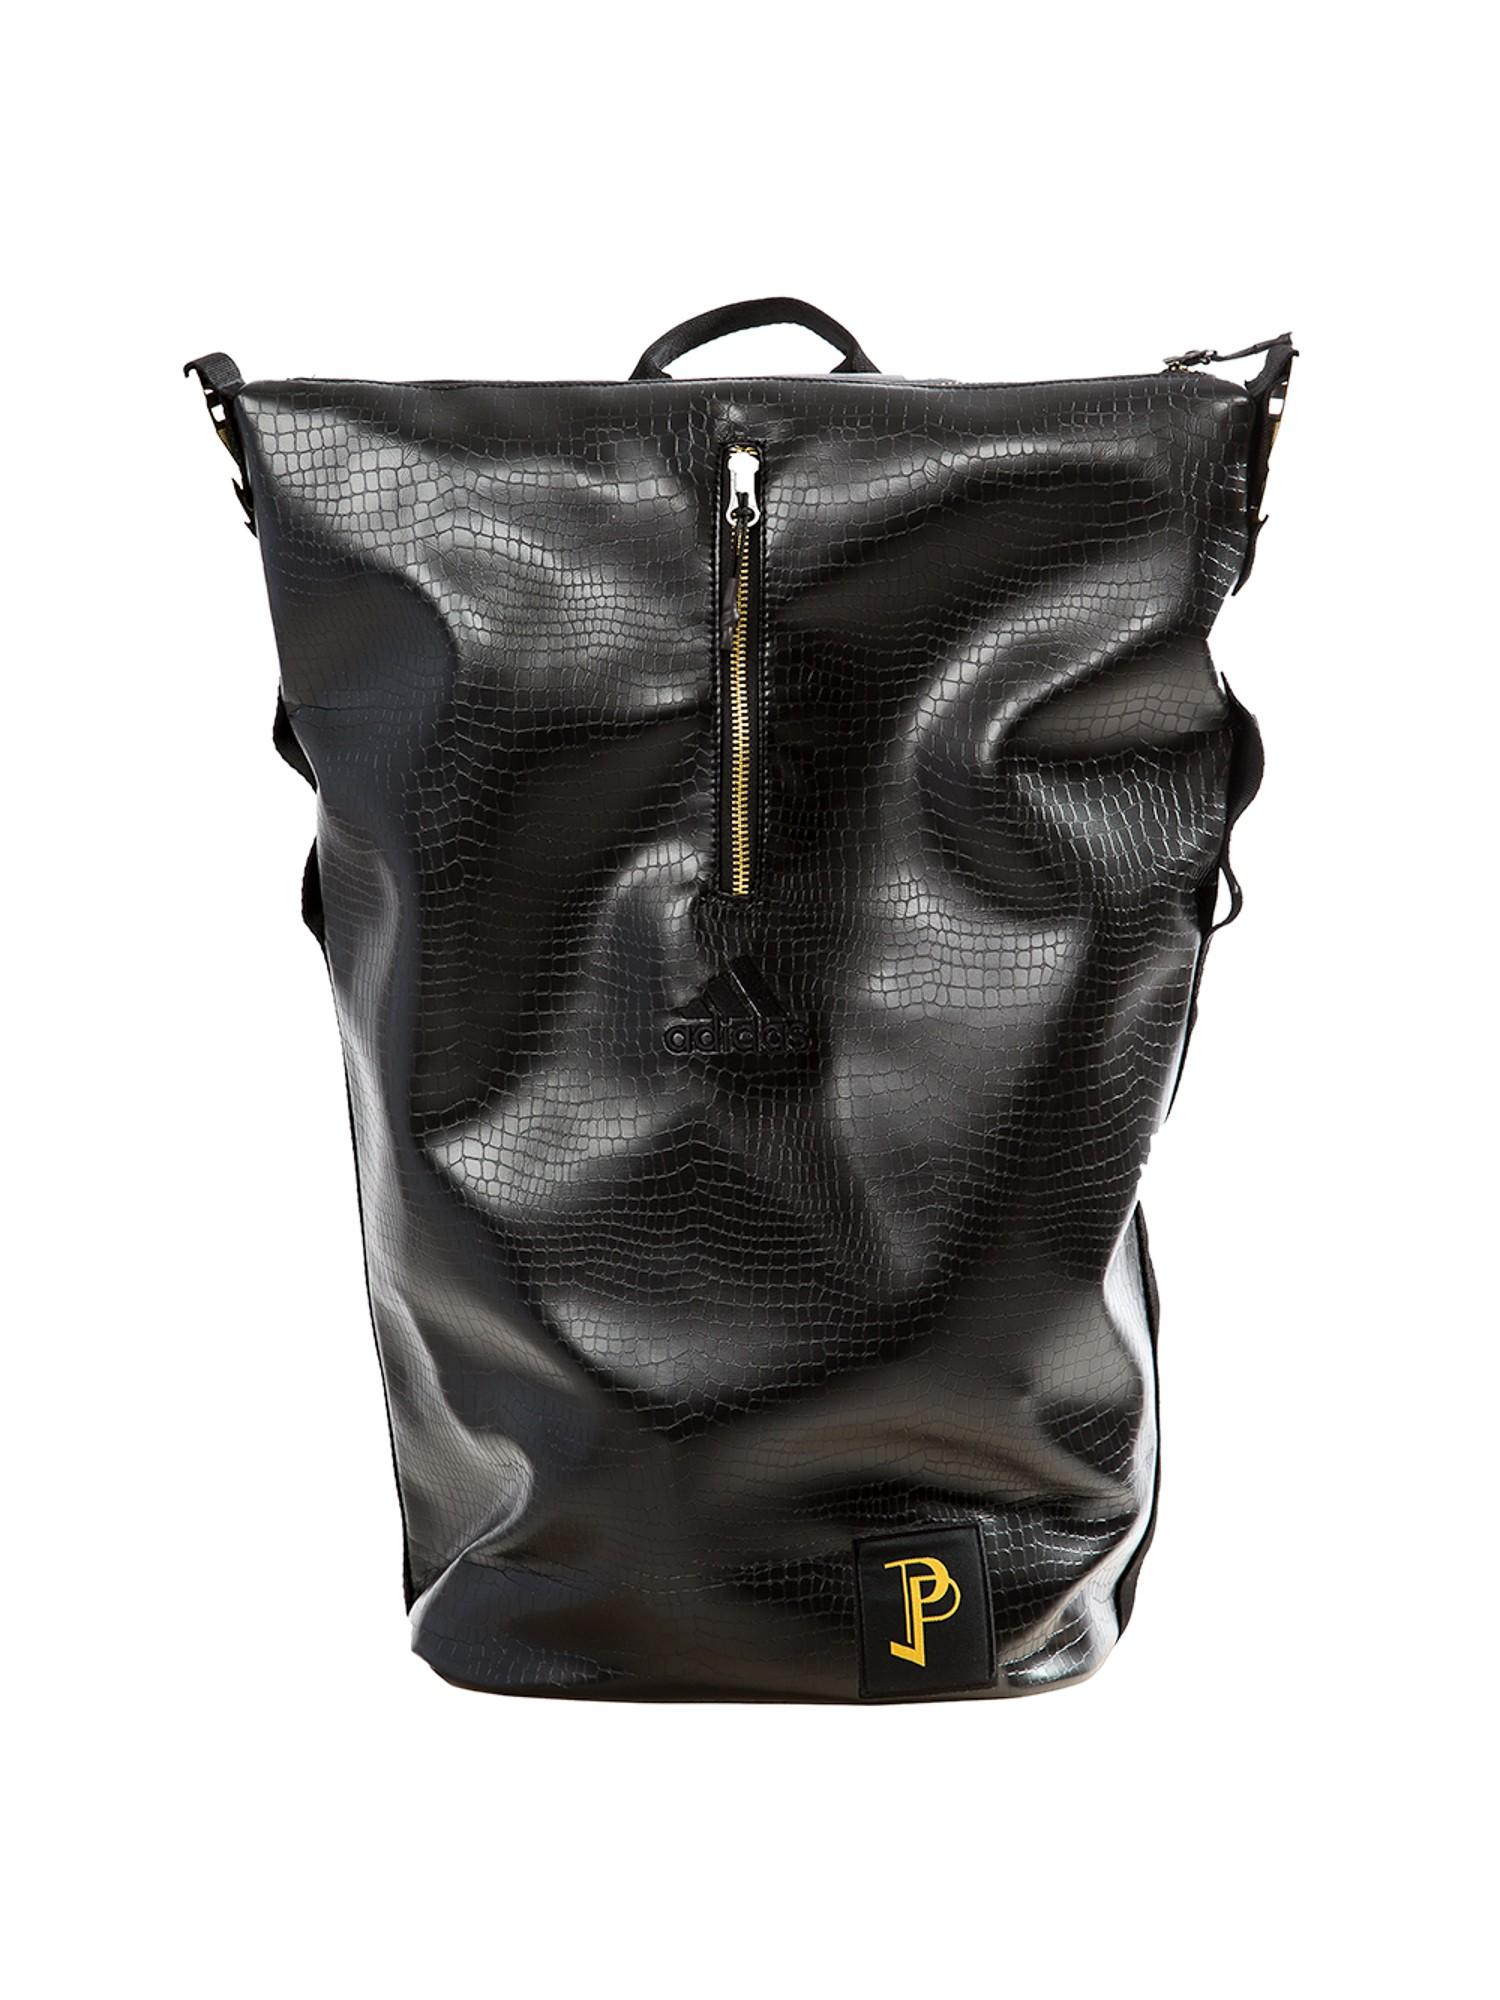 7224a018e5e8 Lyst - adidas Originals Pogba Backpack in Black for Men